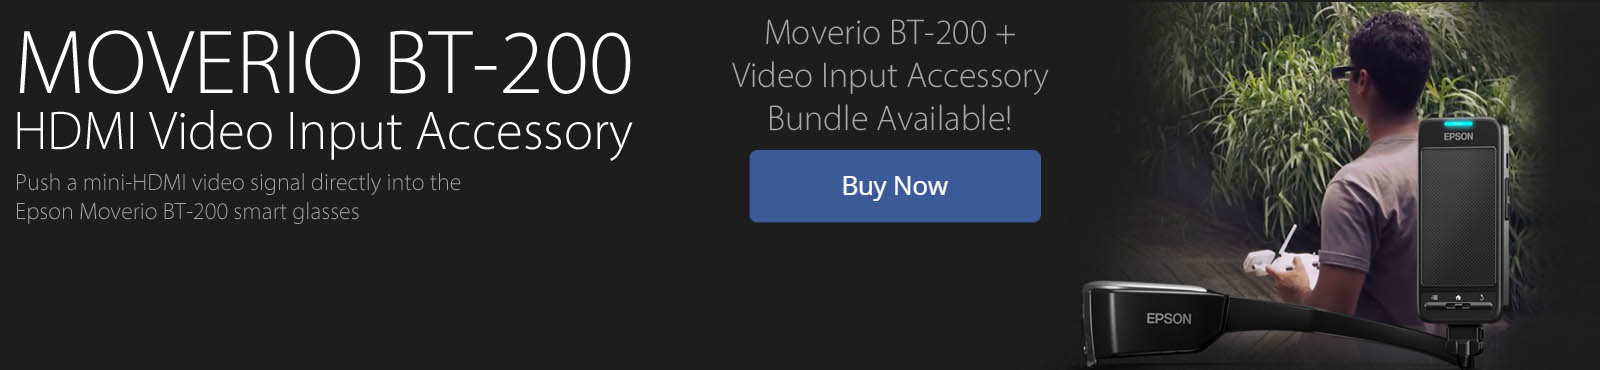 Moverio_hdmi_input_banner